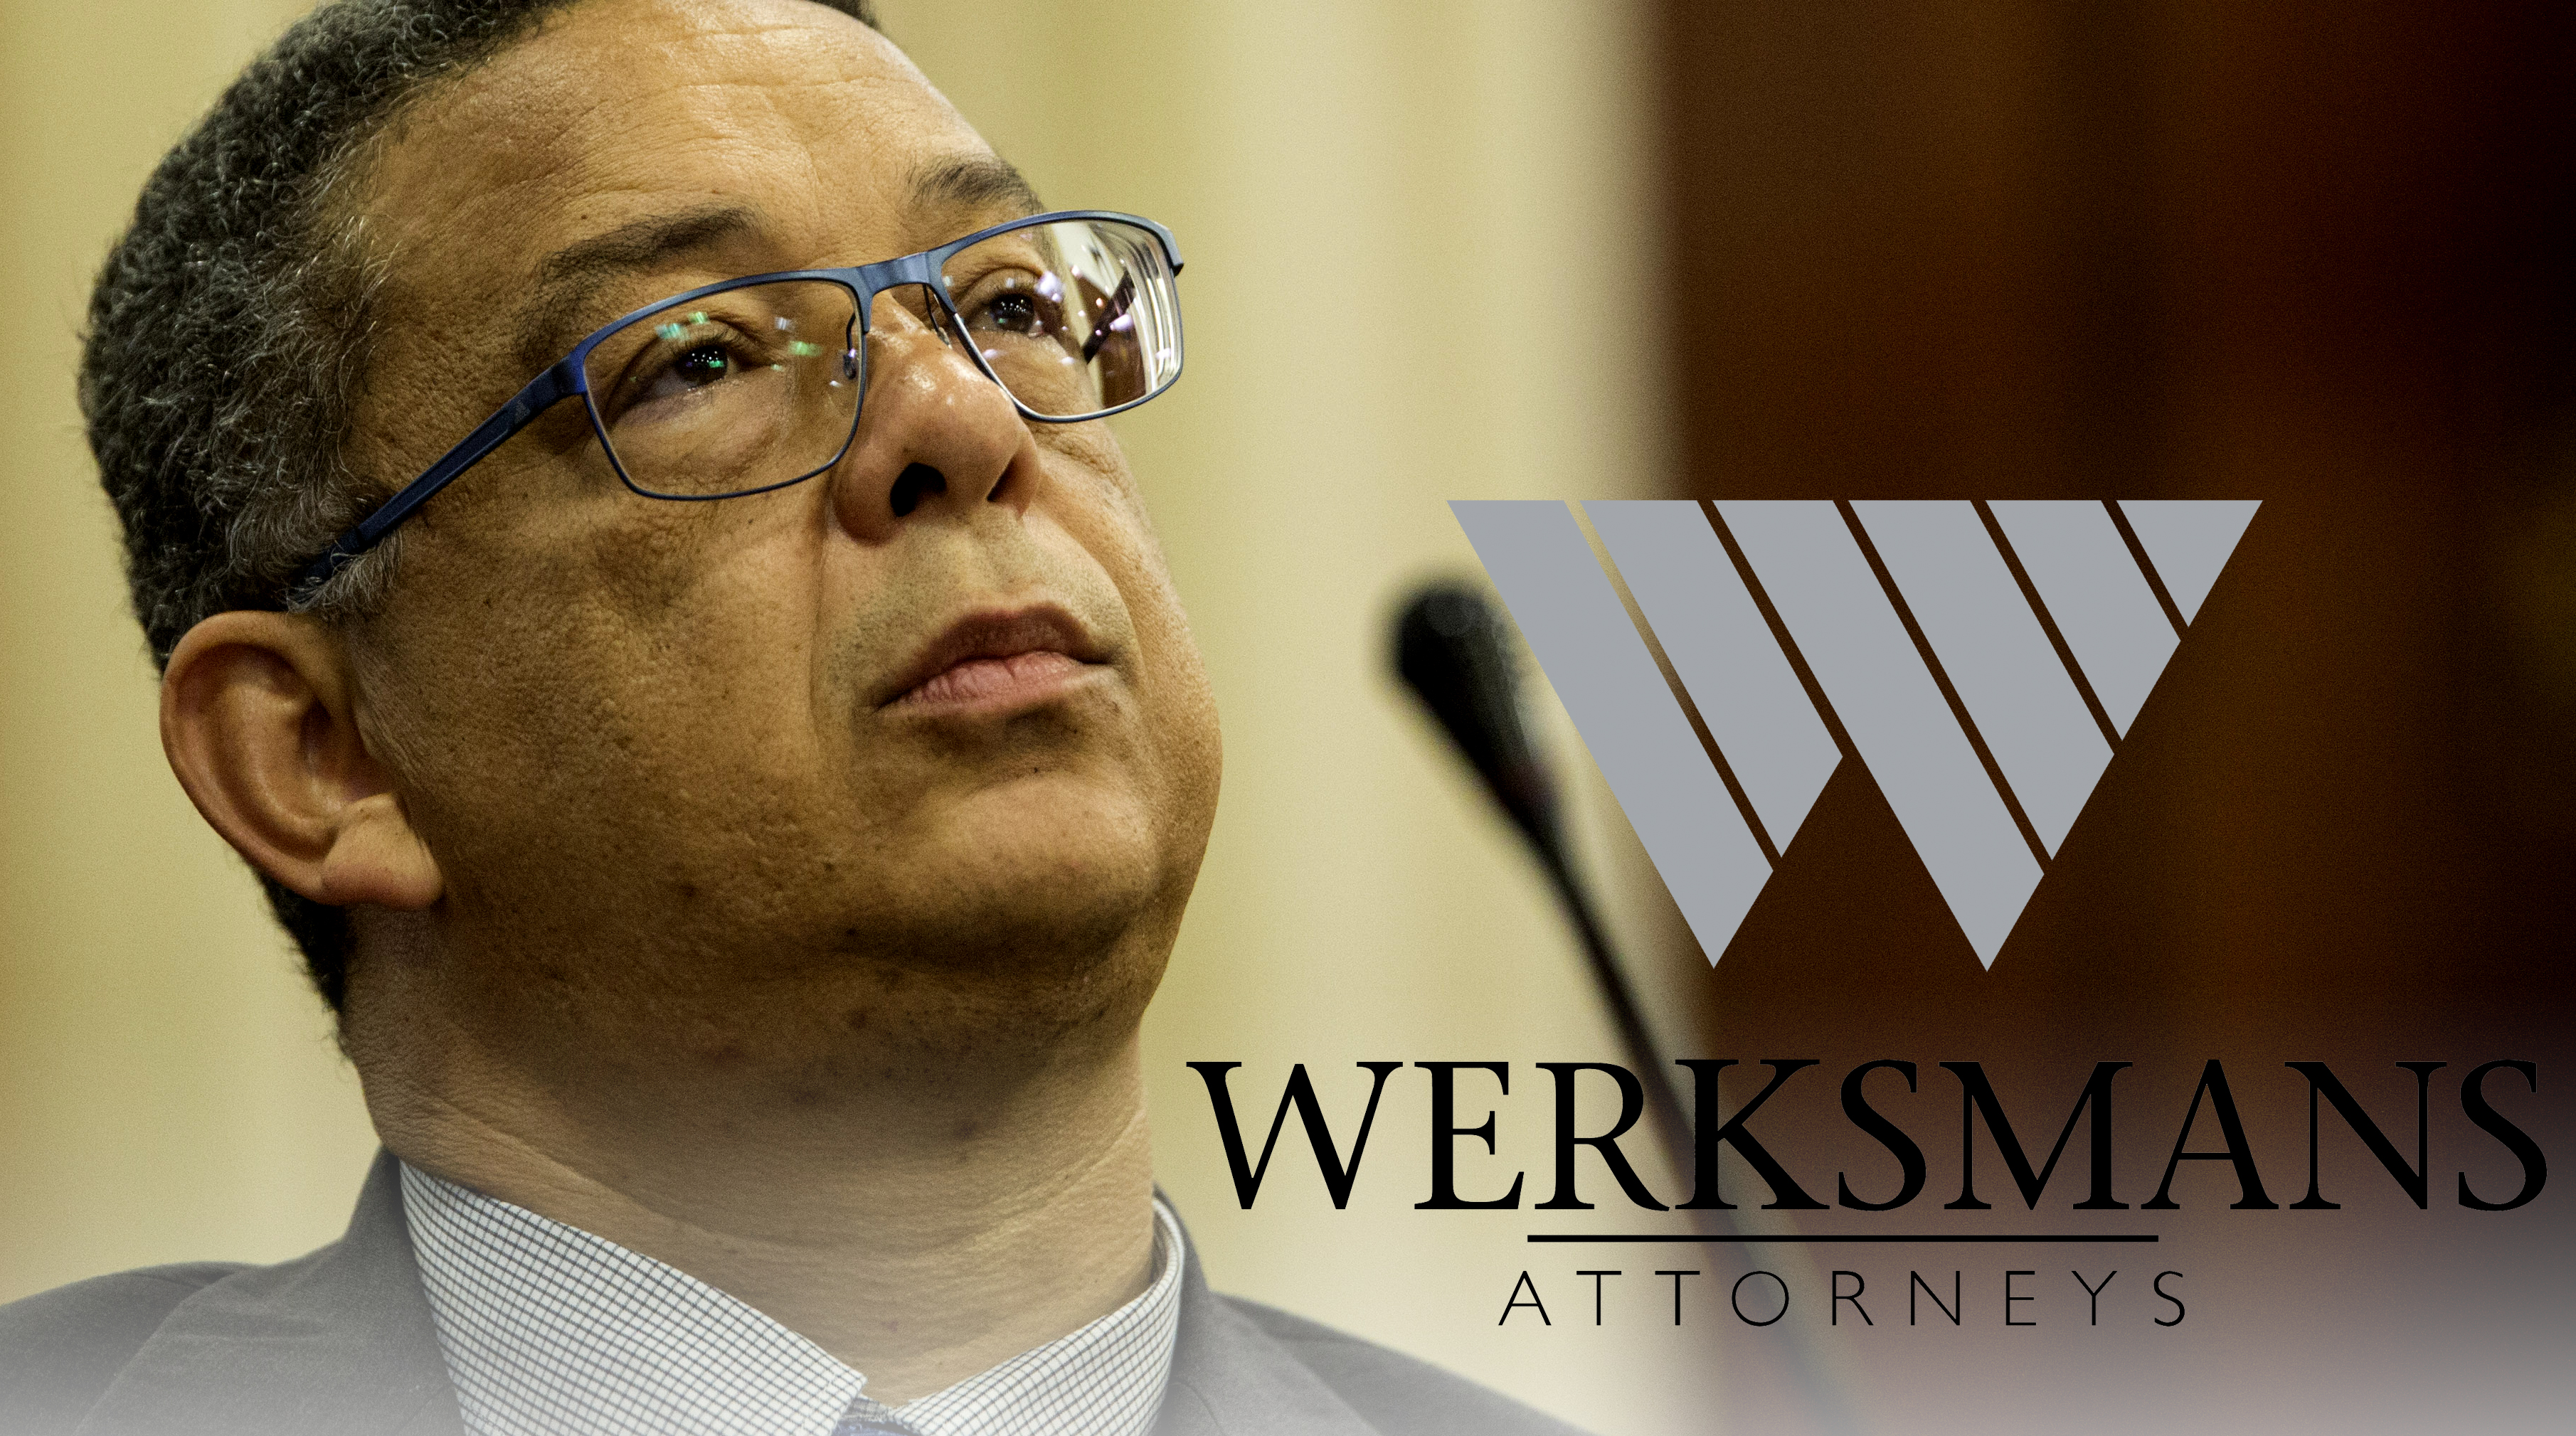 Robert McBride turns the tables on Werksmans law firm